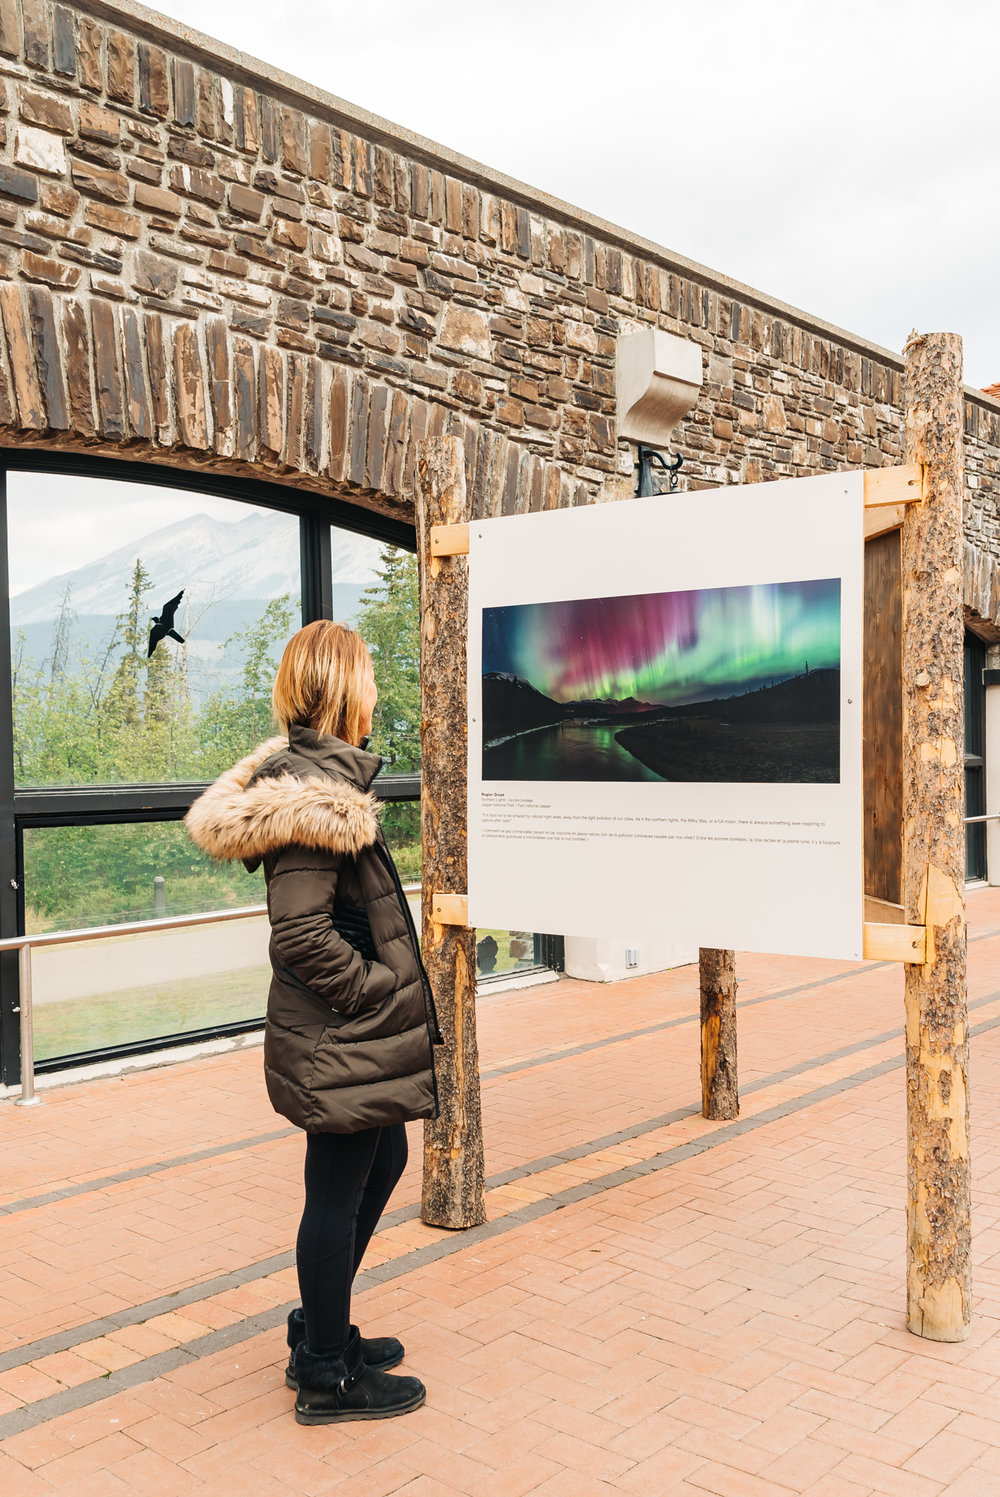 Crystal admiring the photography of Banff